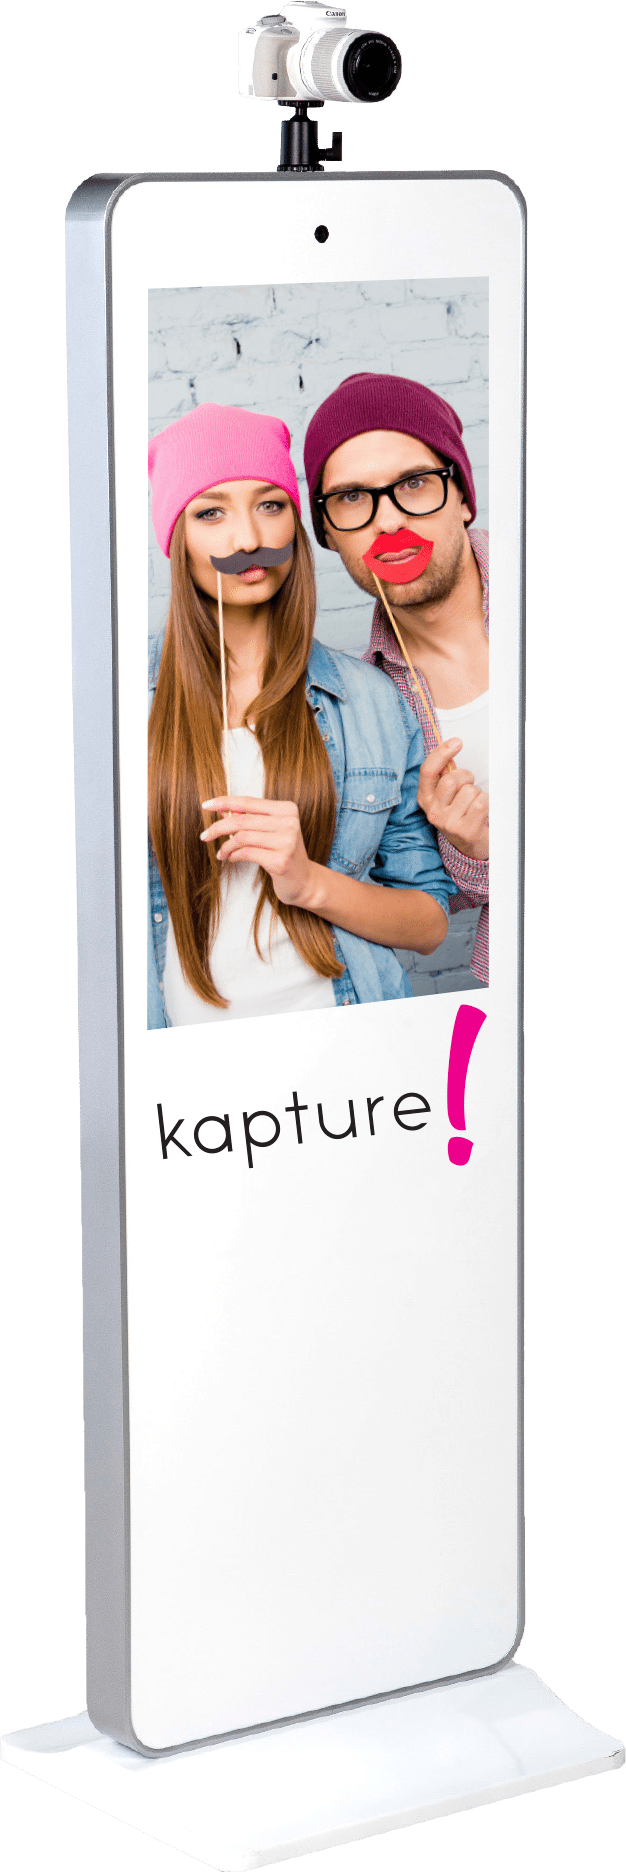 kapture! Photobooth Rental in Knoxville, Pigeon Forge, East Tennessee and Ohio